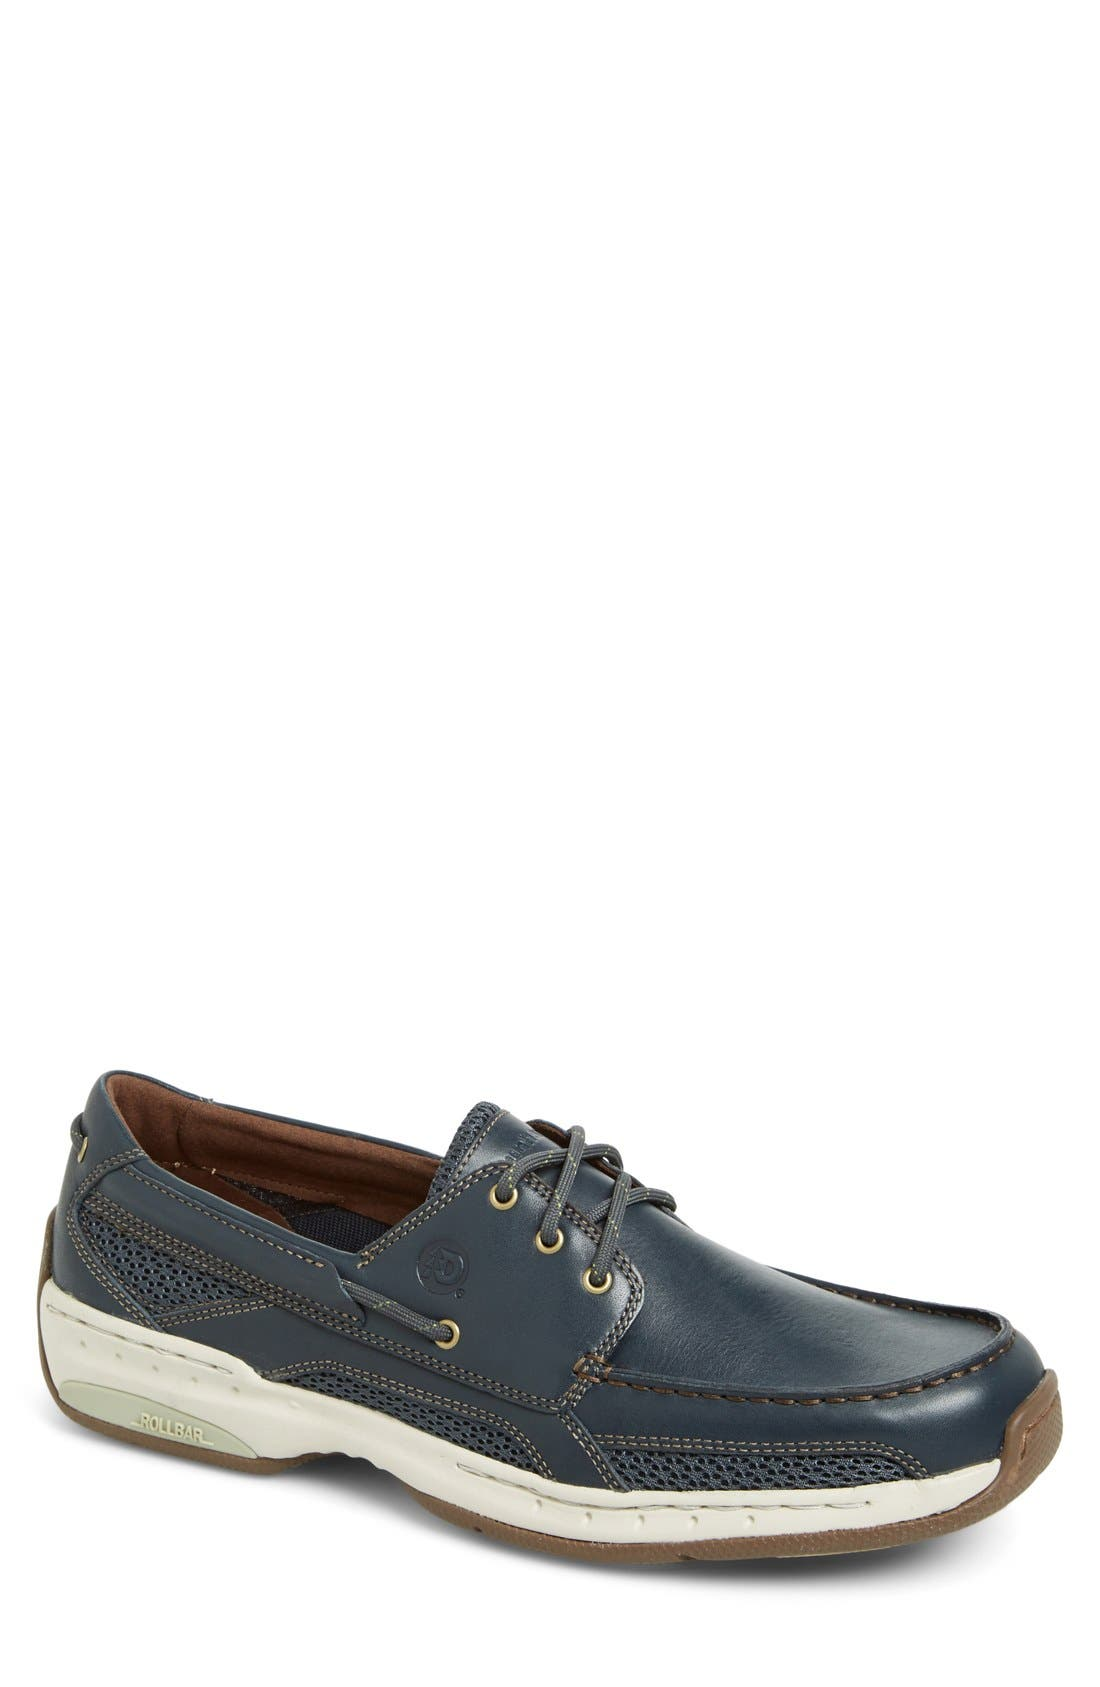 'Captain' Boat Shoe,                             Main thumbnail 1, color,                             NAVY